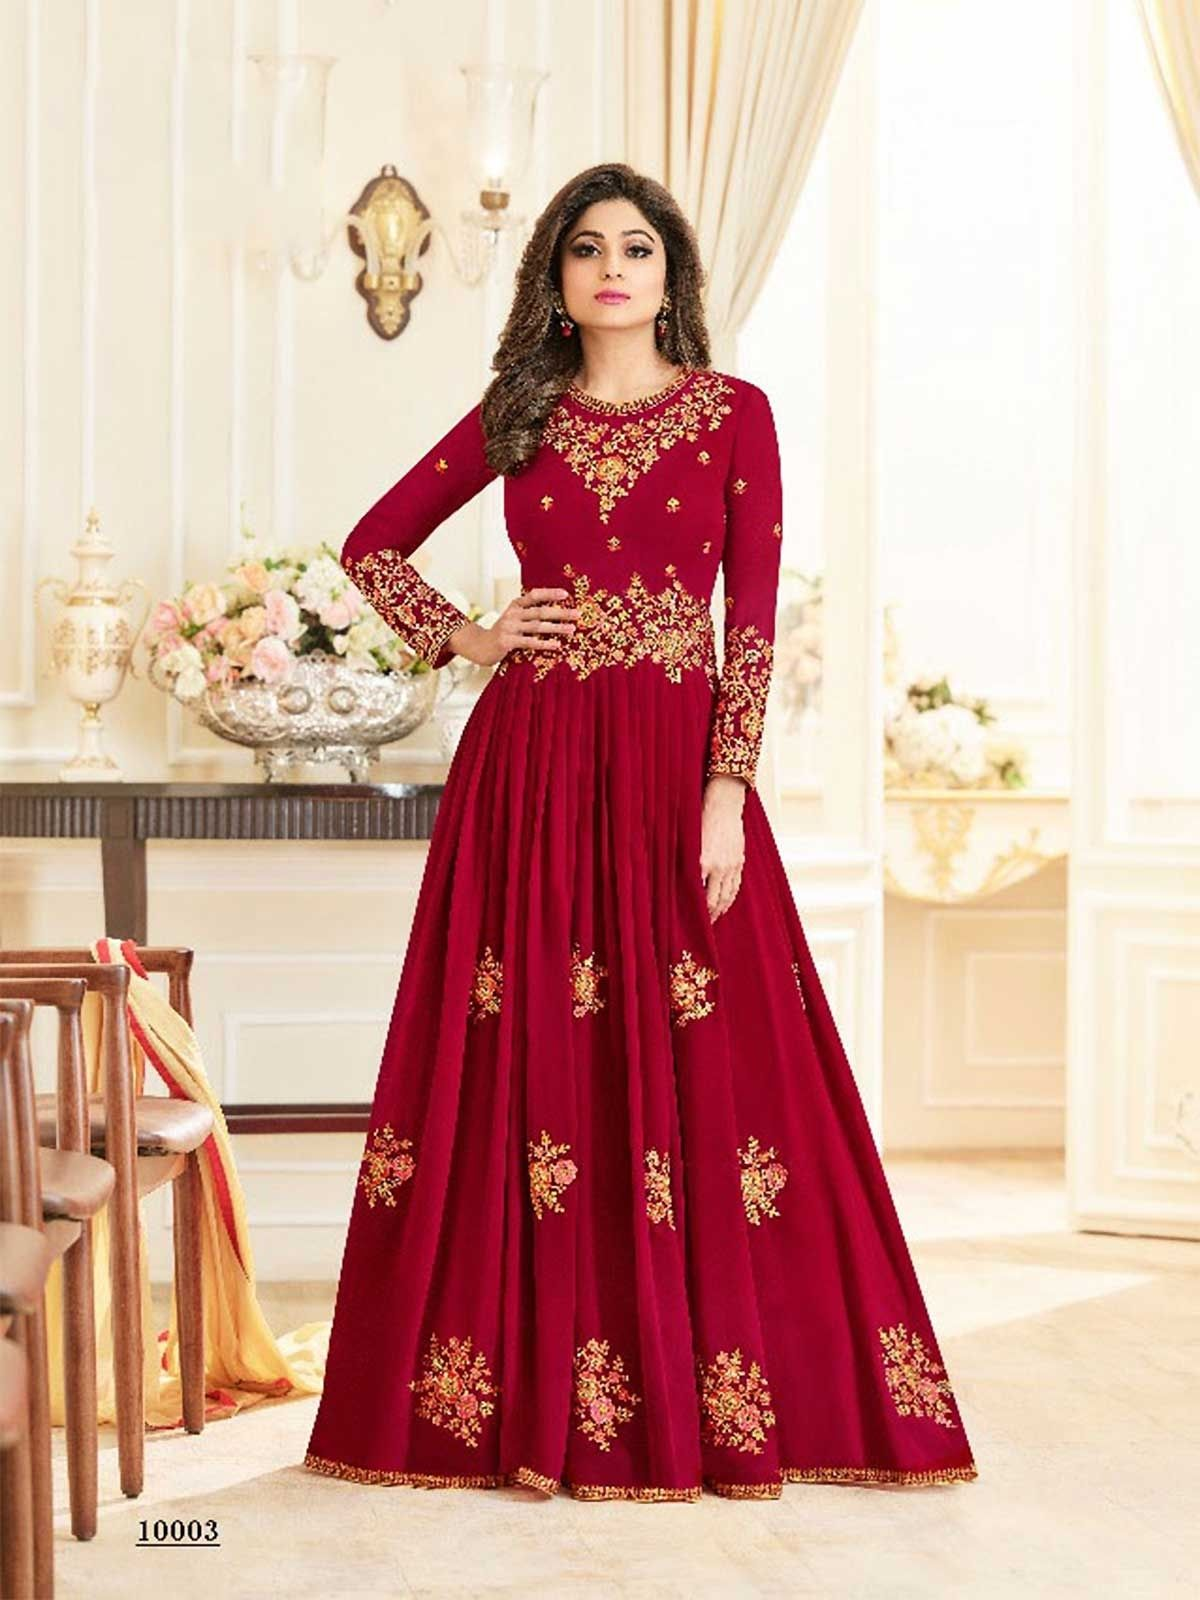 8b9aa438fb Buy online beautiful dark red color wedding long style anarkali dress  shopping. Browse our latest designer red anarkali suits and red color  anarkali salwar ...